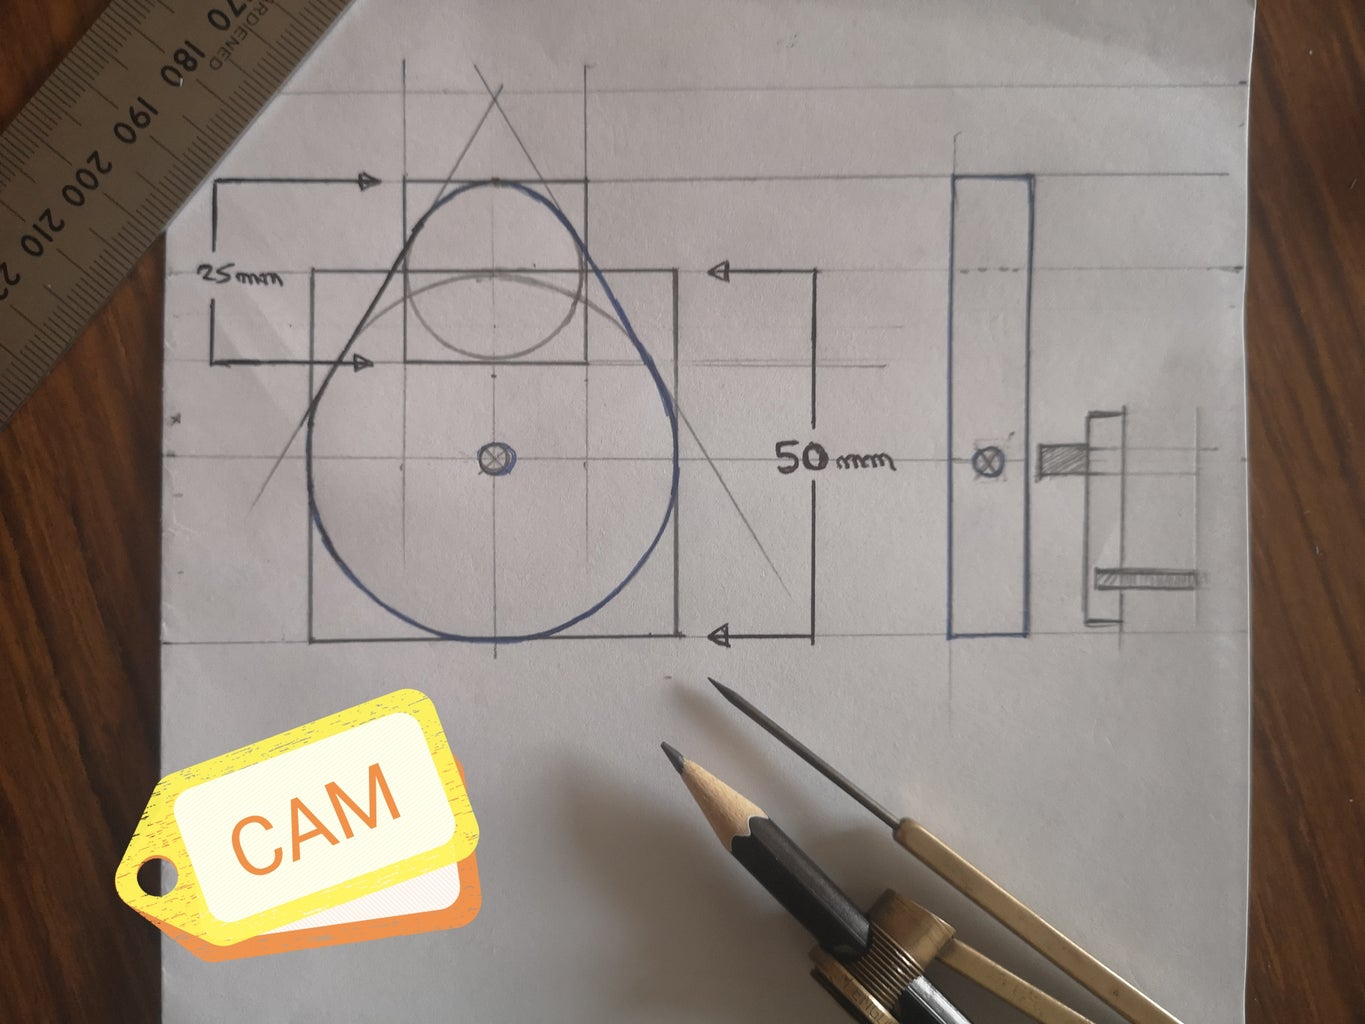 Making the Cam Mechanism